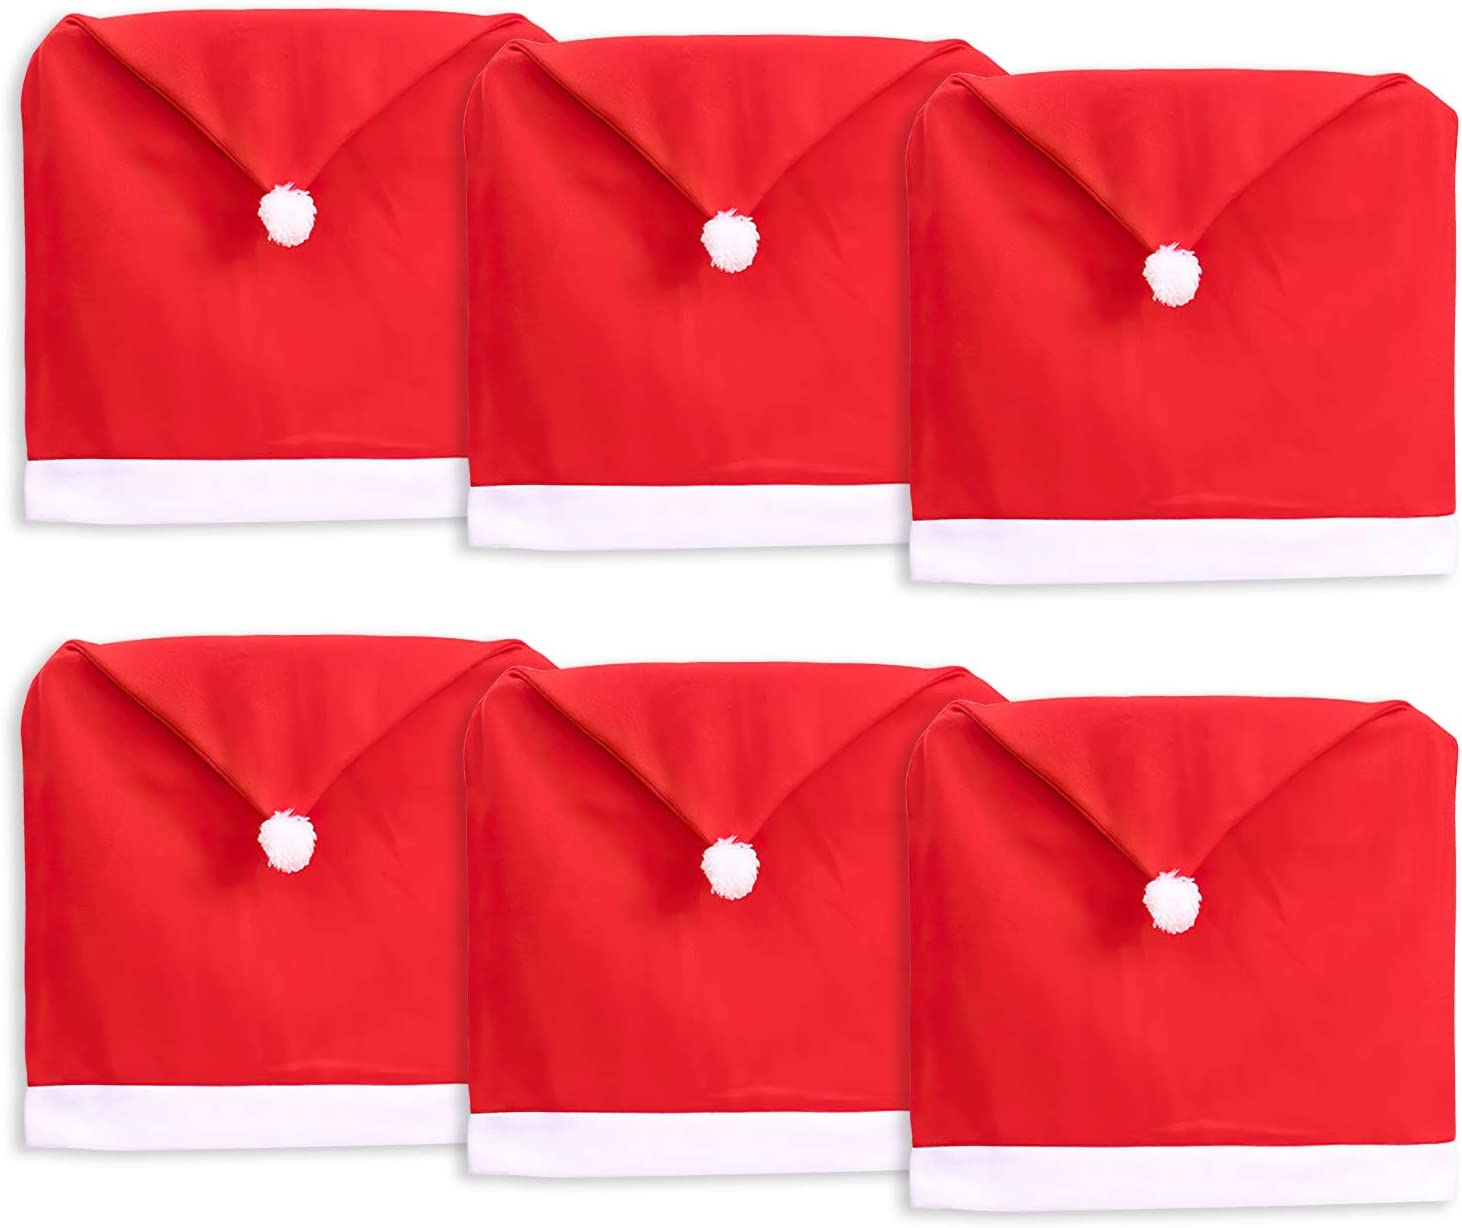 Jucoan 6 Pack Christmas Chair Covers, Red Santa Hat Chair Back Caps Slipcovers Xmas Holiday Decoration for Dinning Room Home Decor